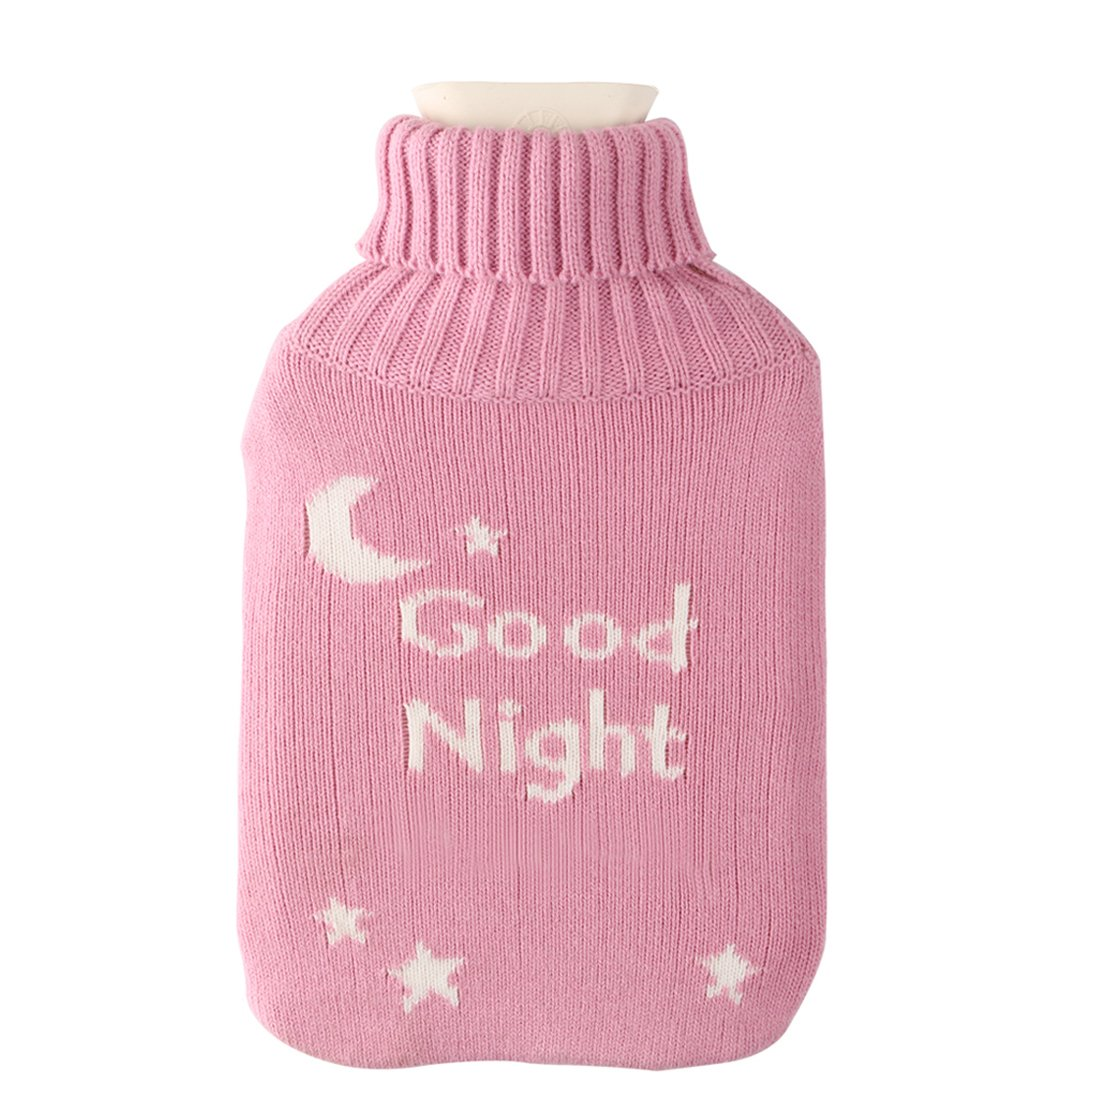 Amazon.com: Large 2 Liter Soft Cute Hot Water Bottle Knit Cover ...